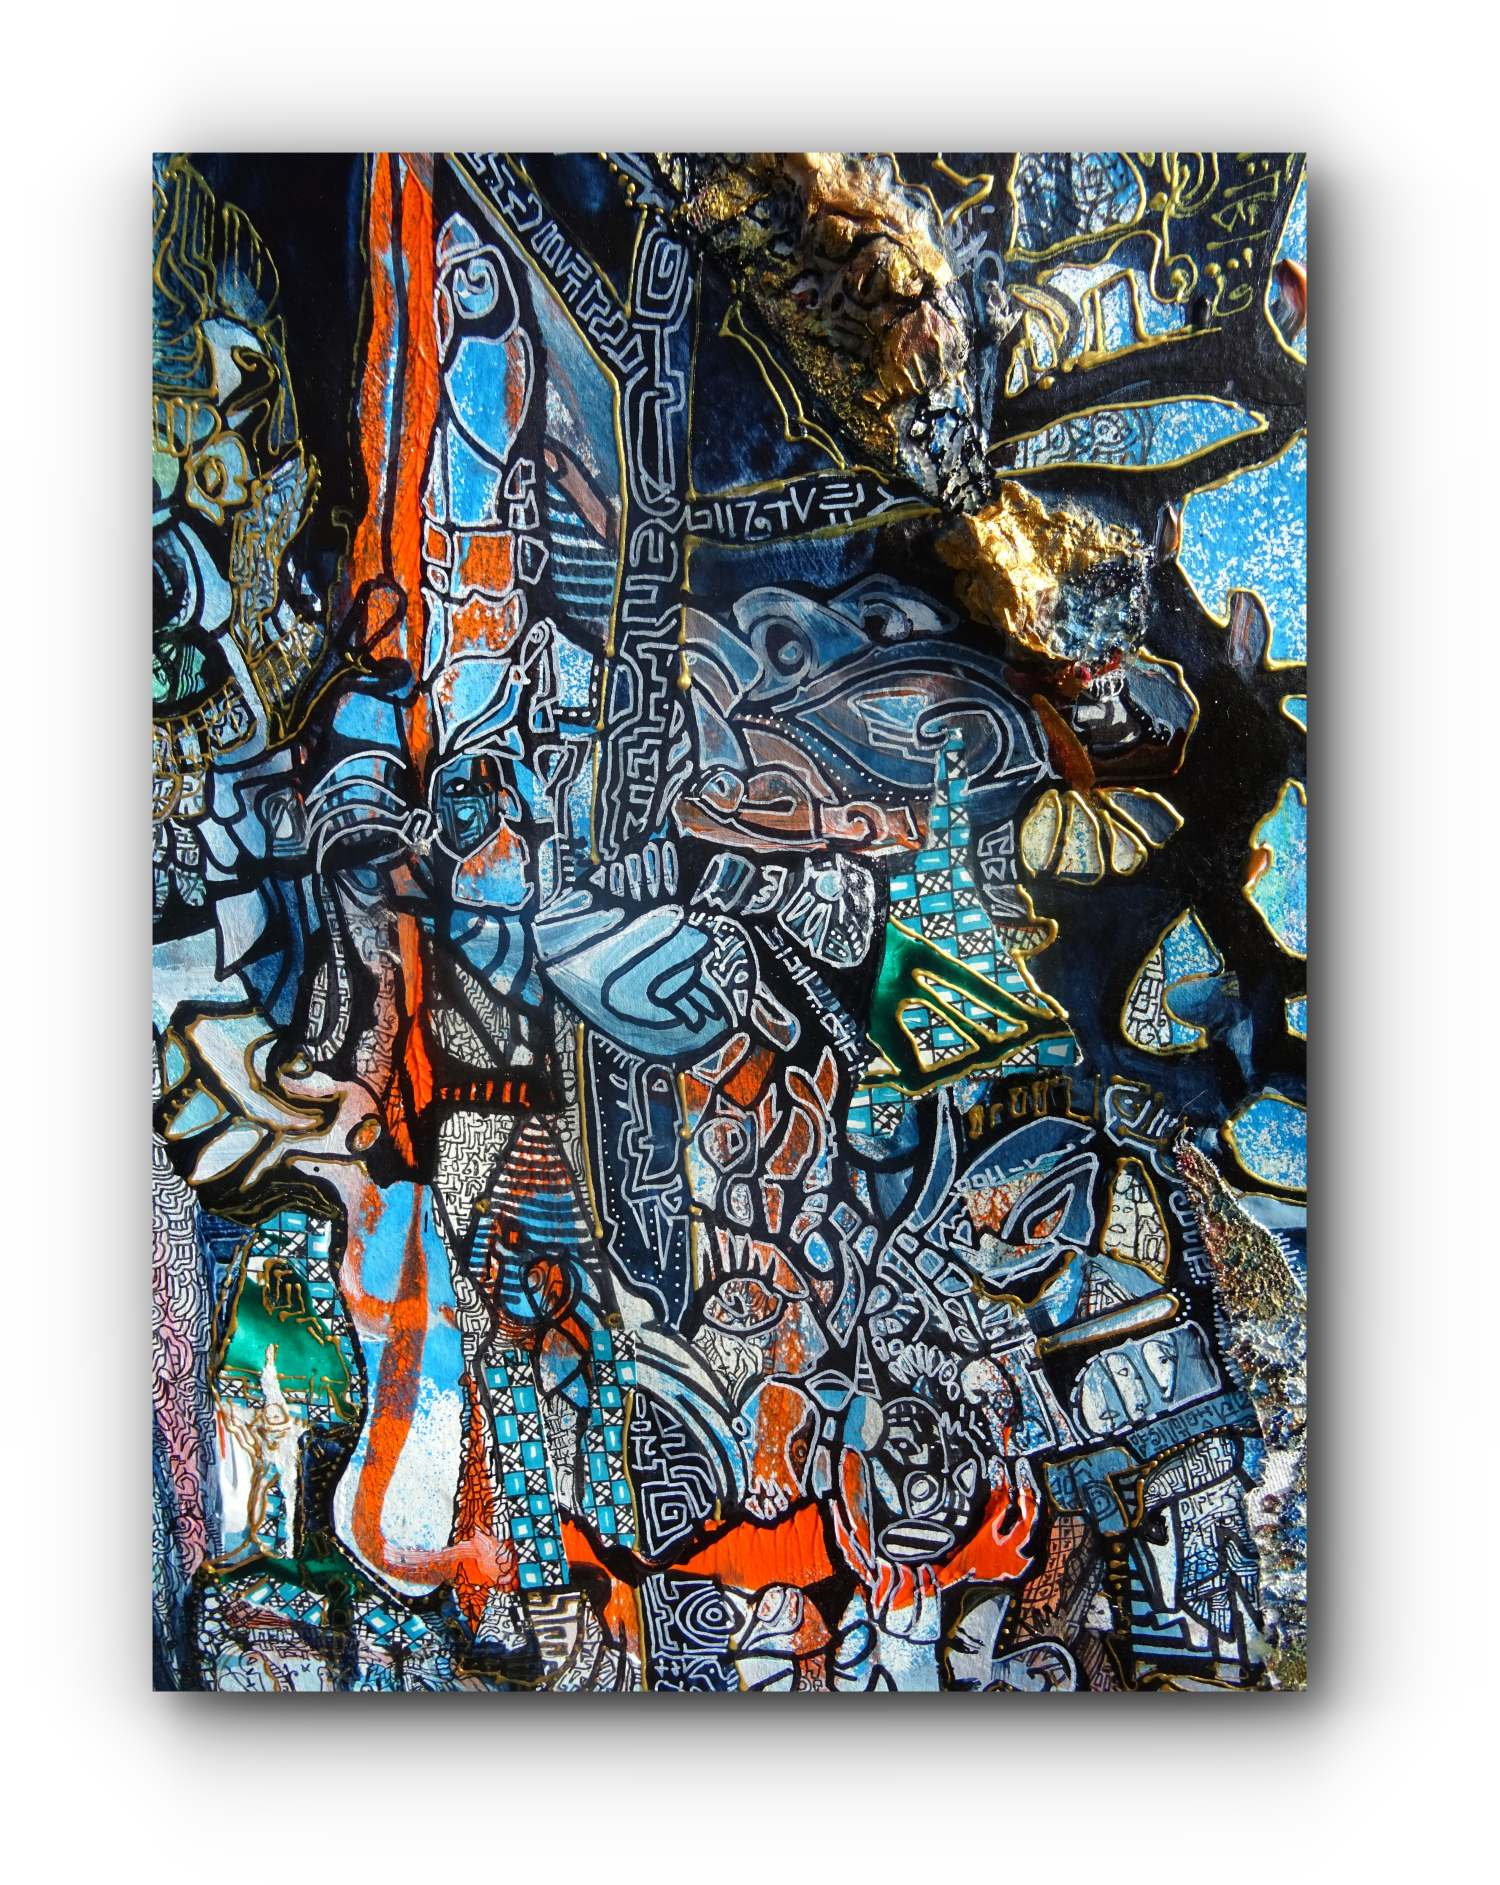 painting-jungle-cathedral-d5-artist-duo-ingress-vortices.jpg